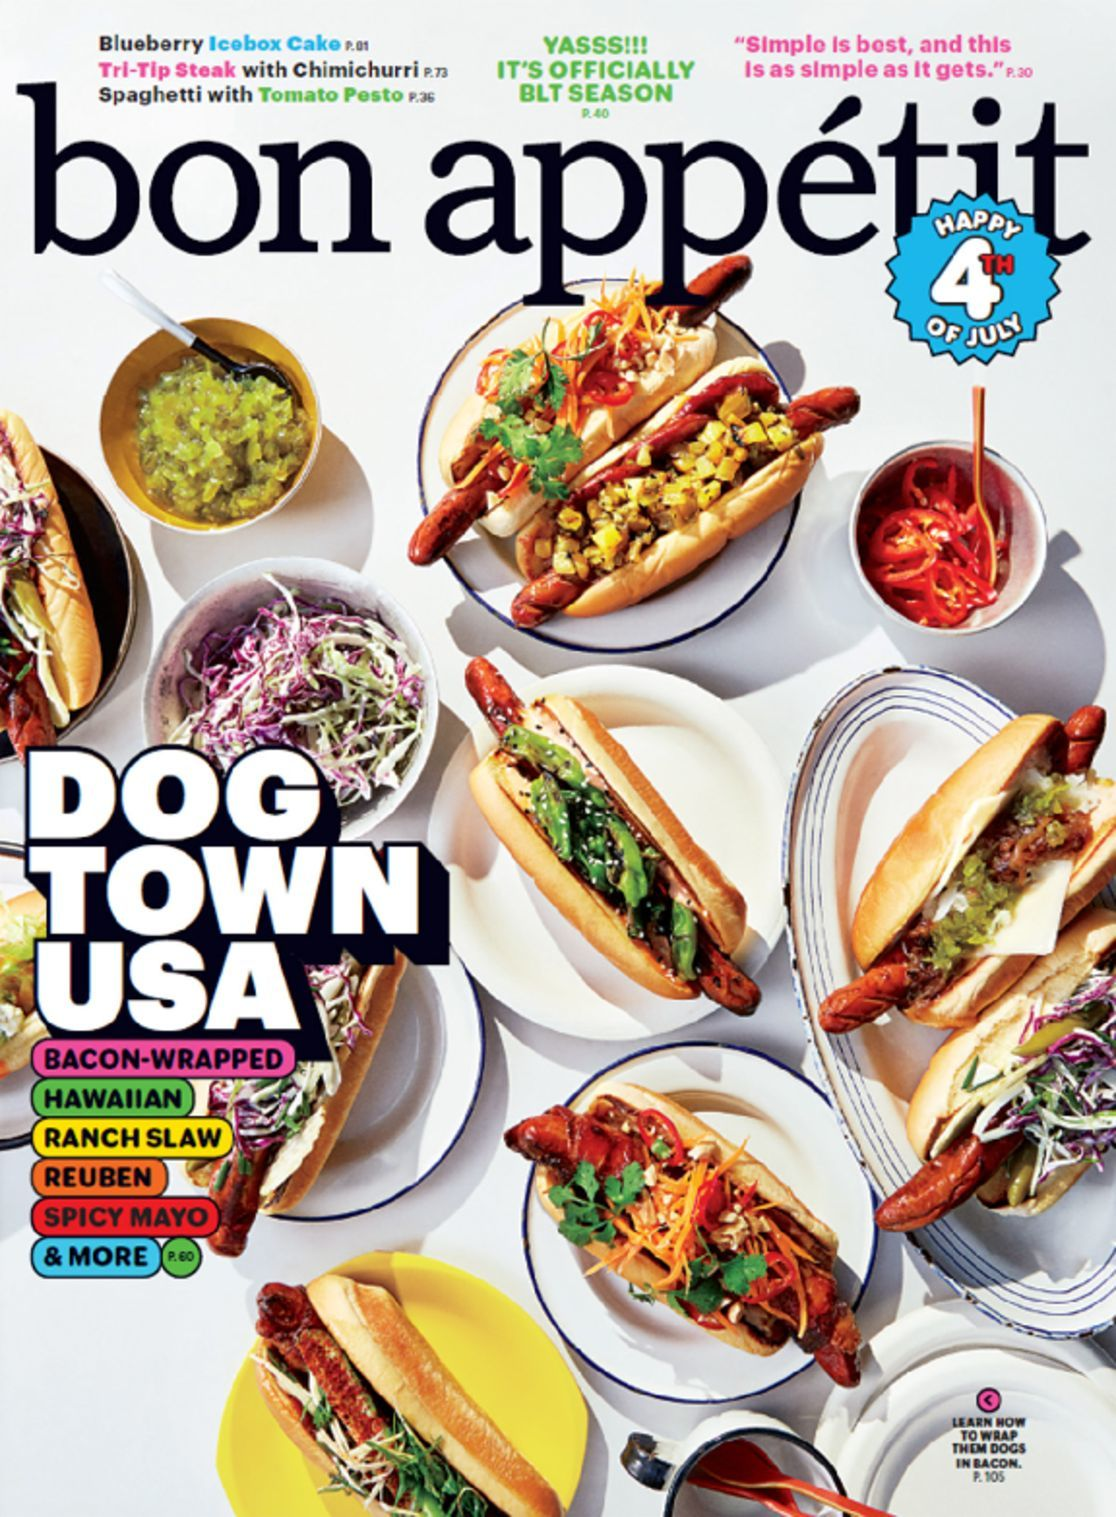 Bon Appétit shot its entire March Culture Issue with the